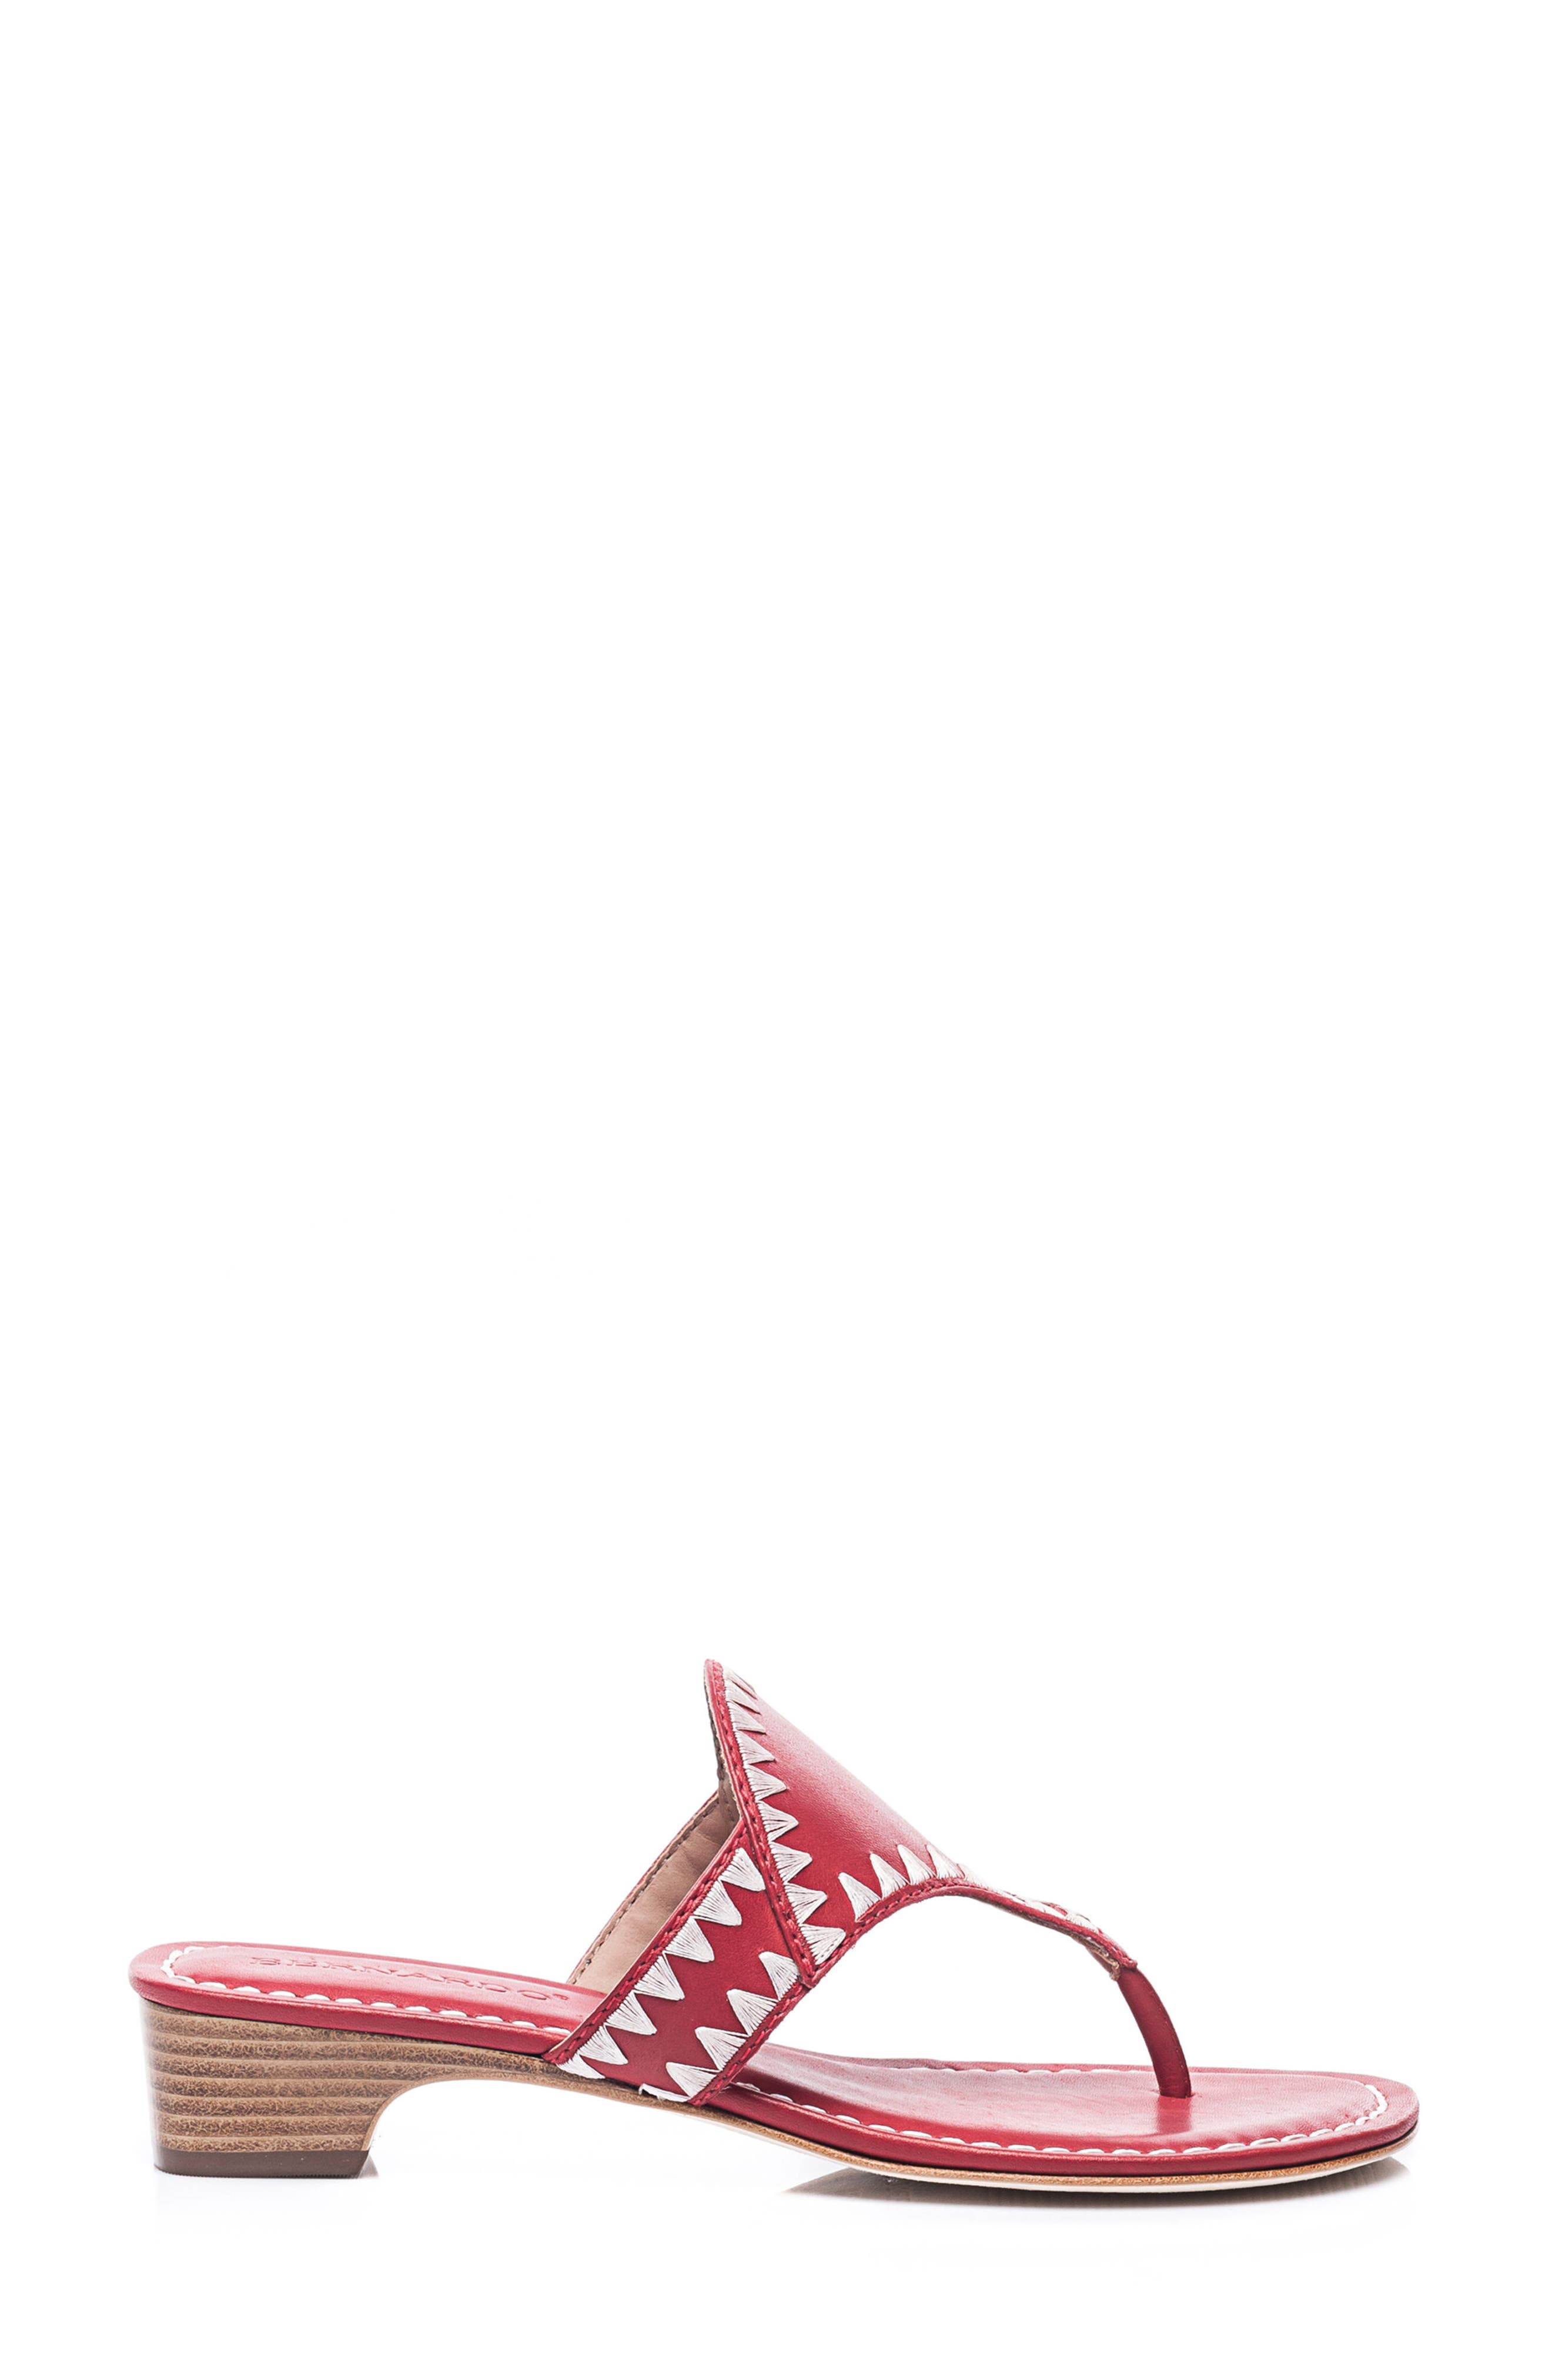 Bernardo Gabi Embroidered Sandal,                             Alternate thumbnail 3, color,                             Red Leather